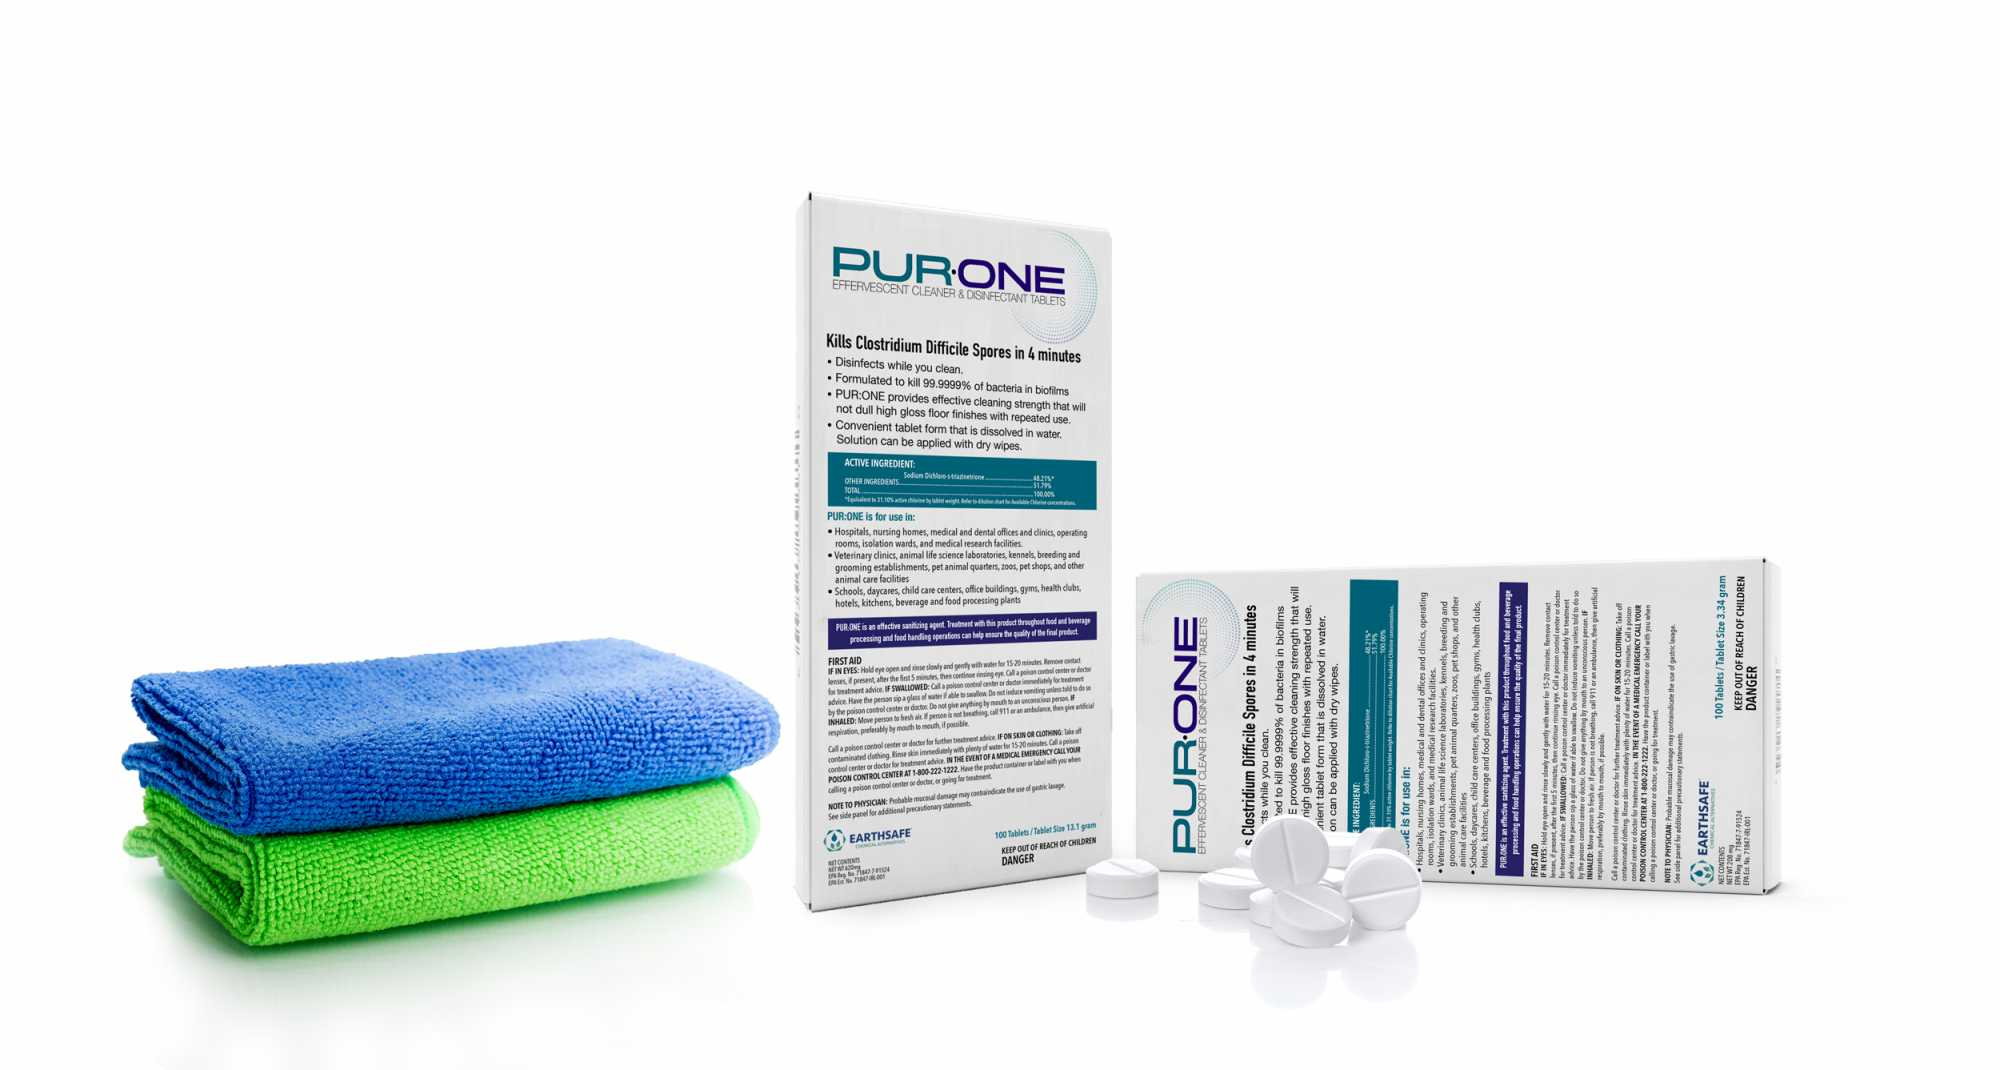 PURONE-Products-Shot-w-microfiber-white-